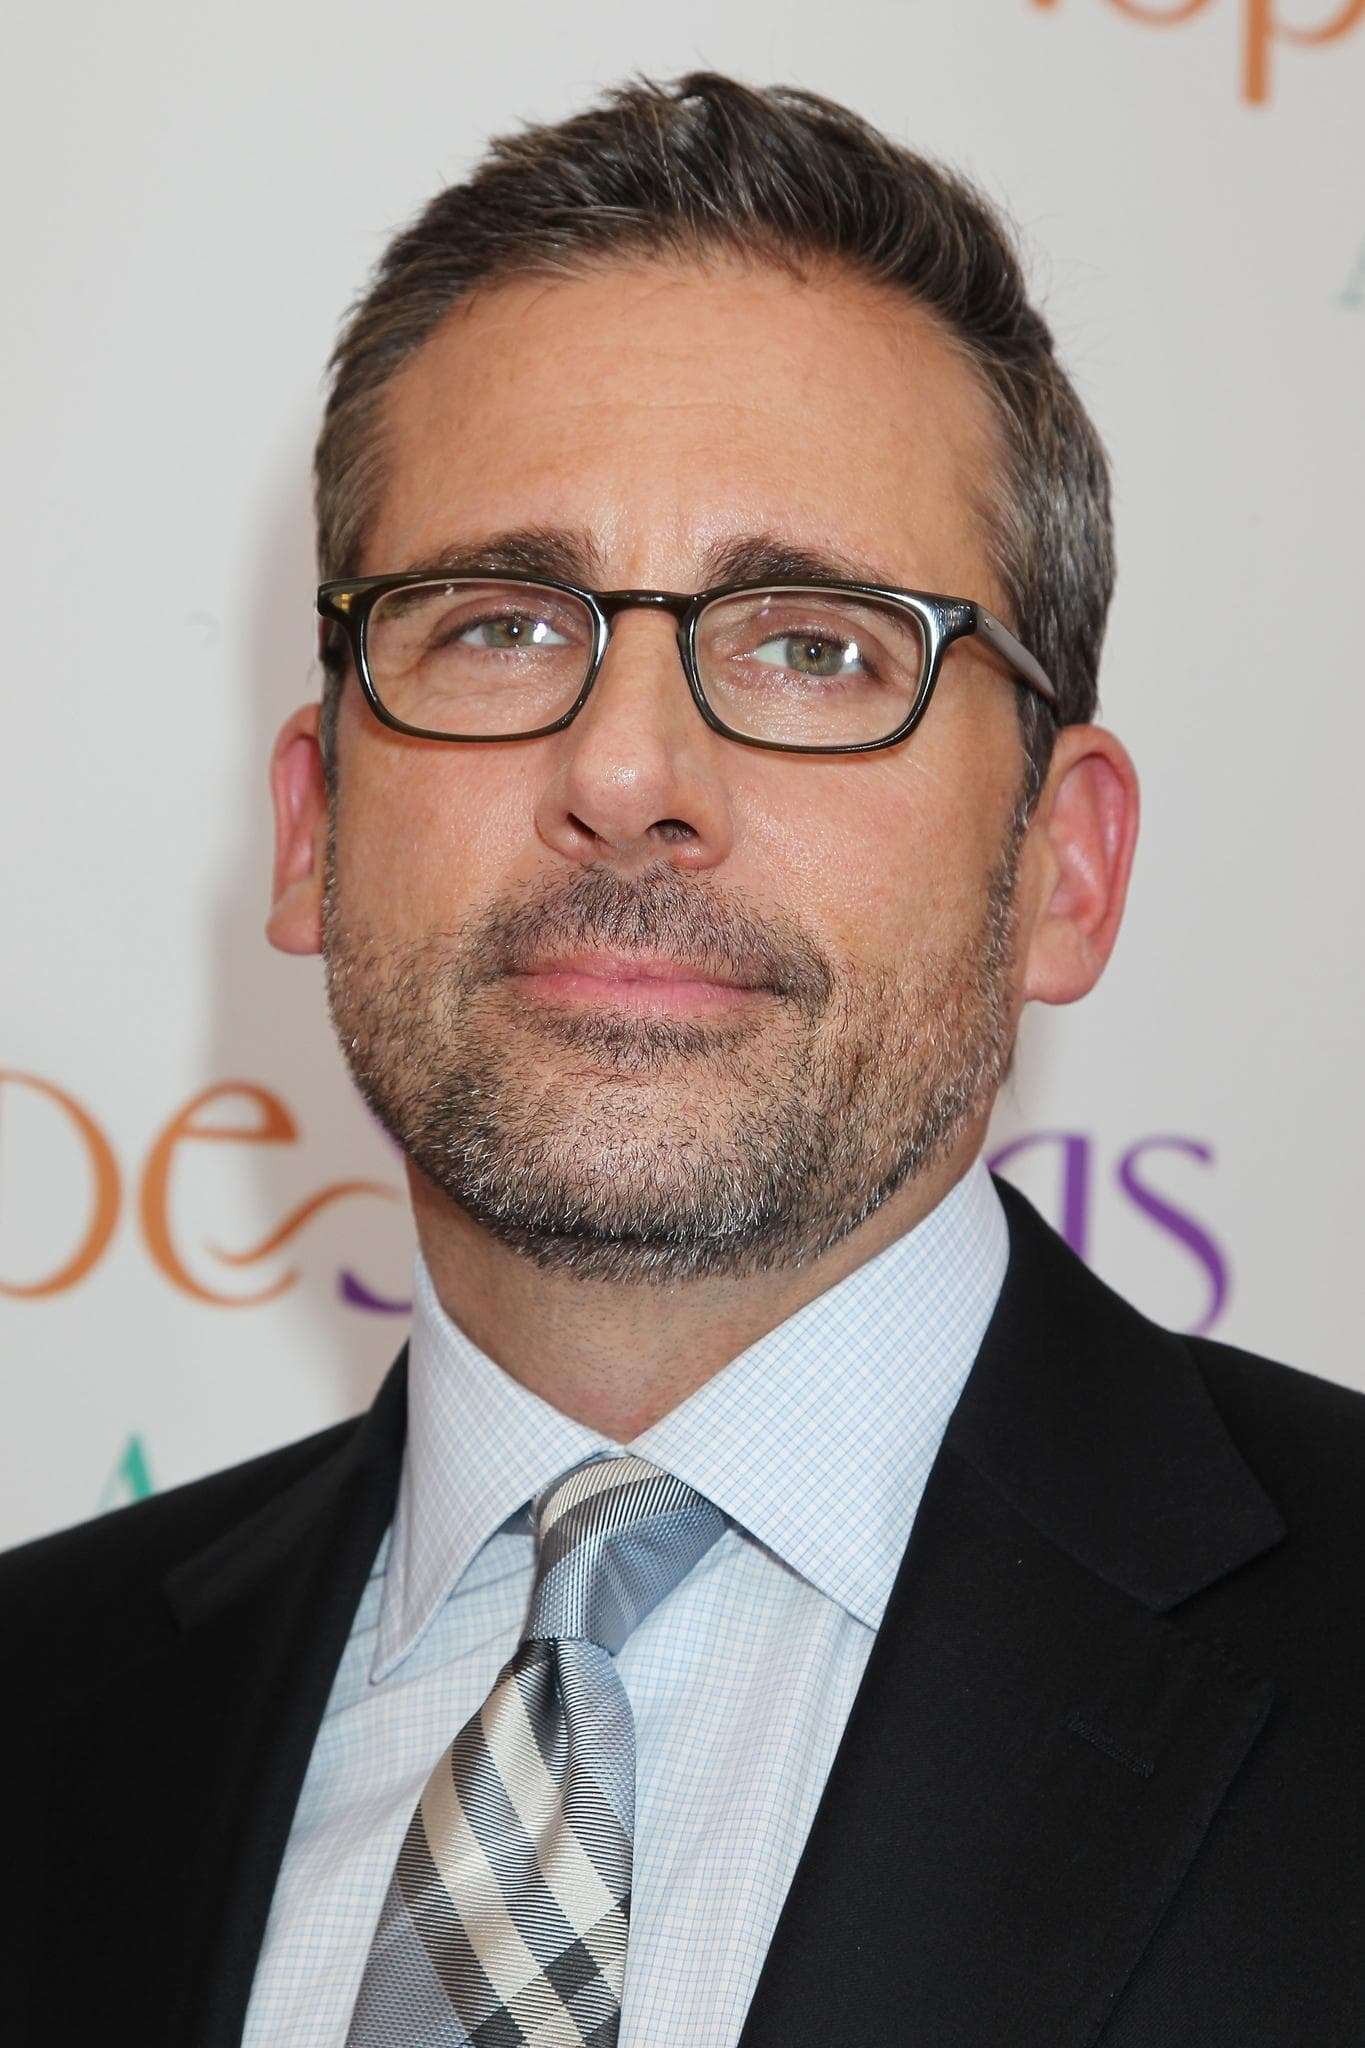 Steve Carell HQ wallpapers